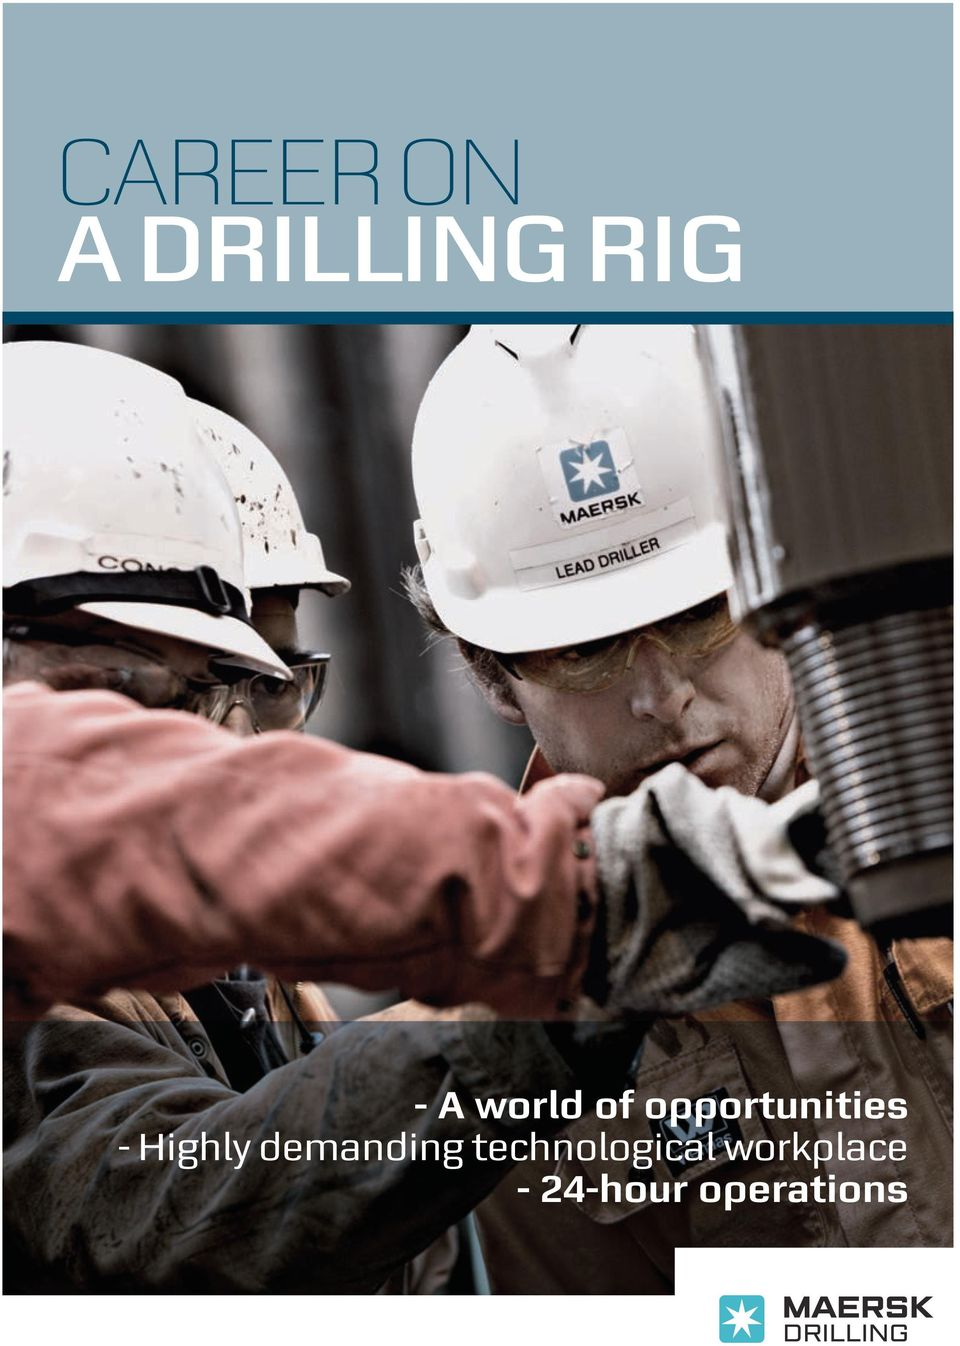 Career on a drilling rig - PDF